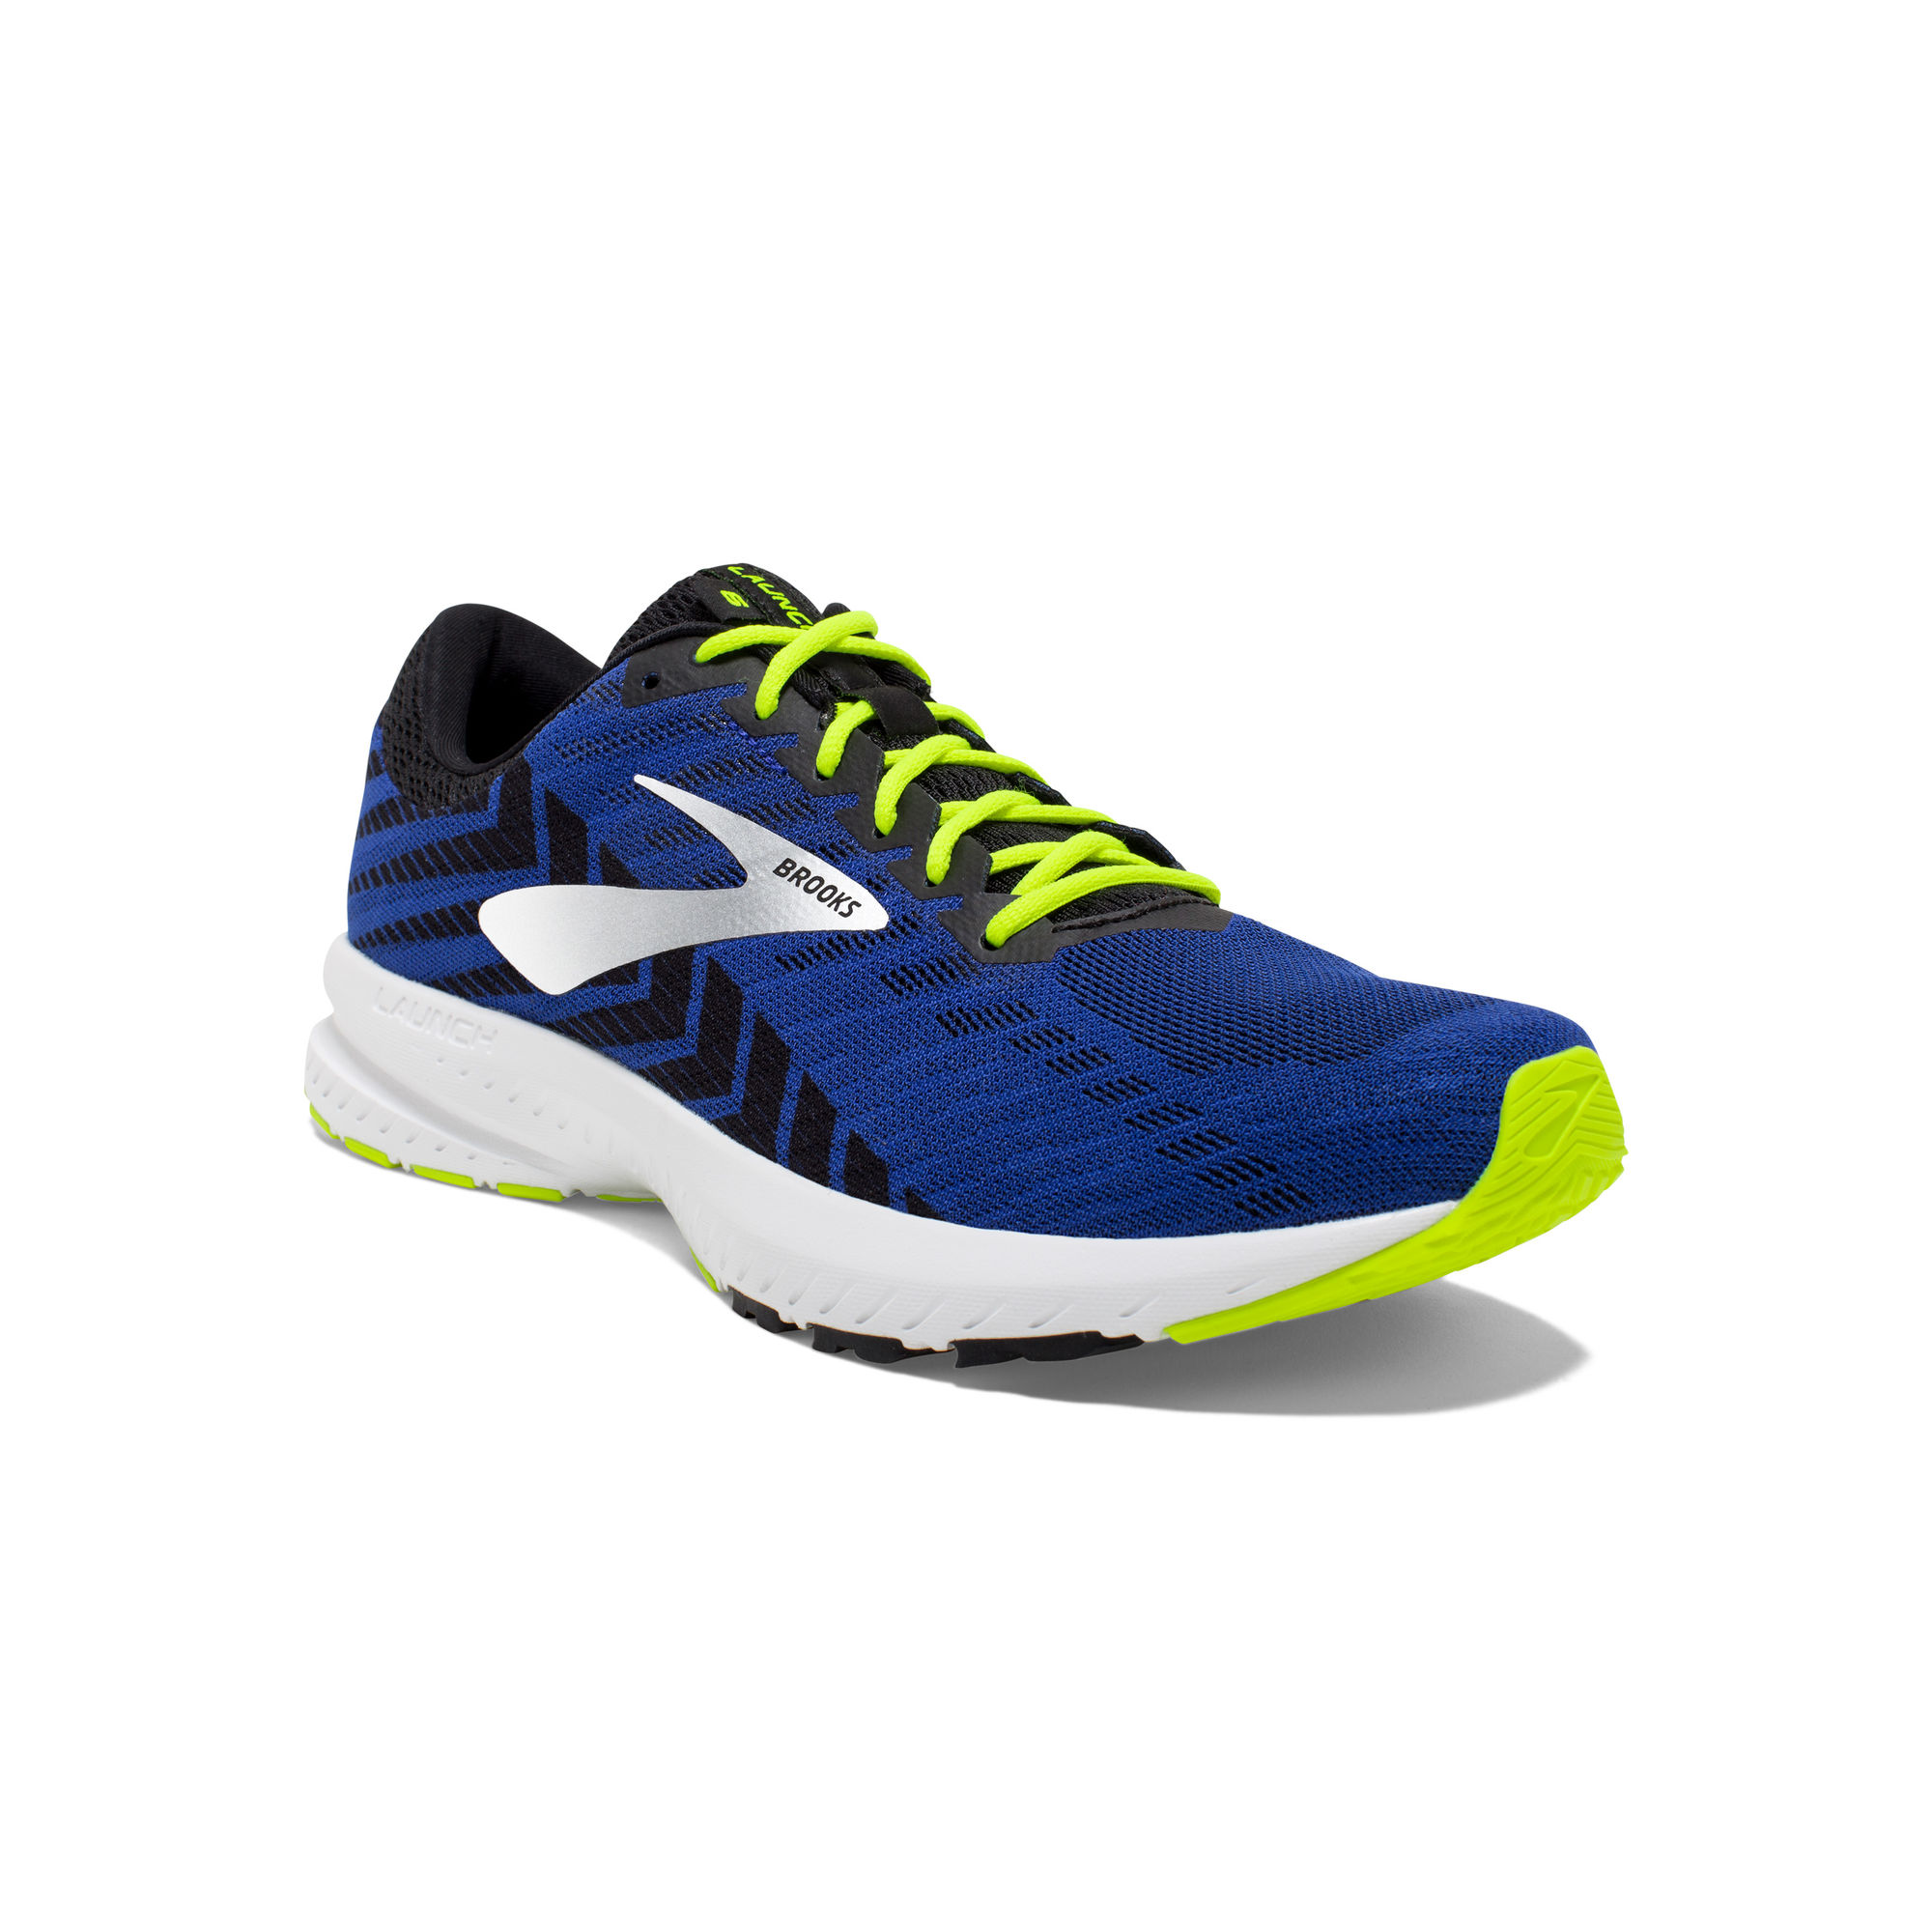 Brooks Launch 6 in Blau Gelb